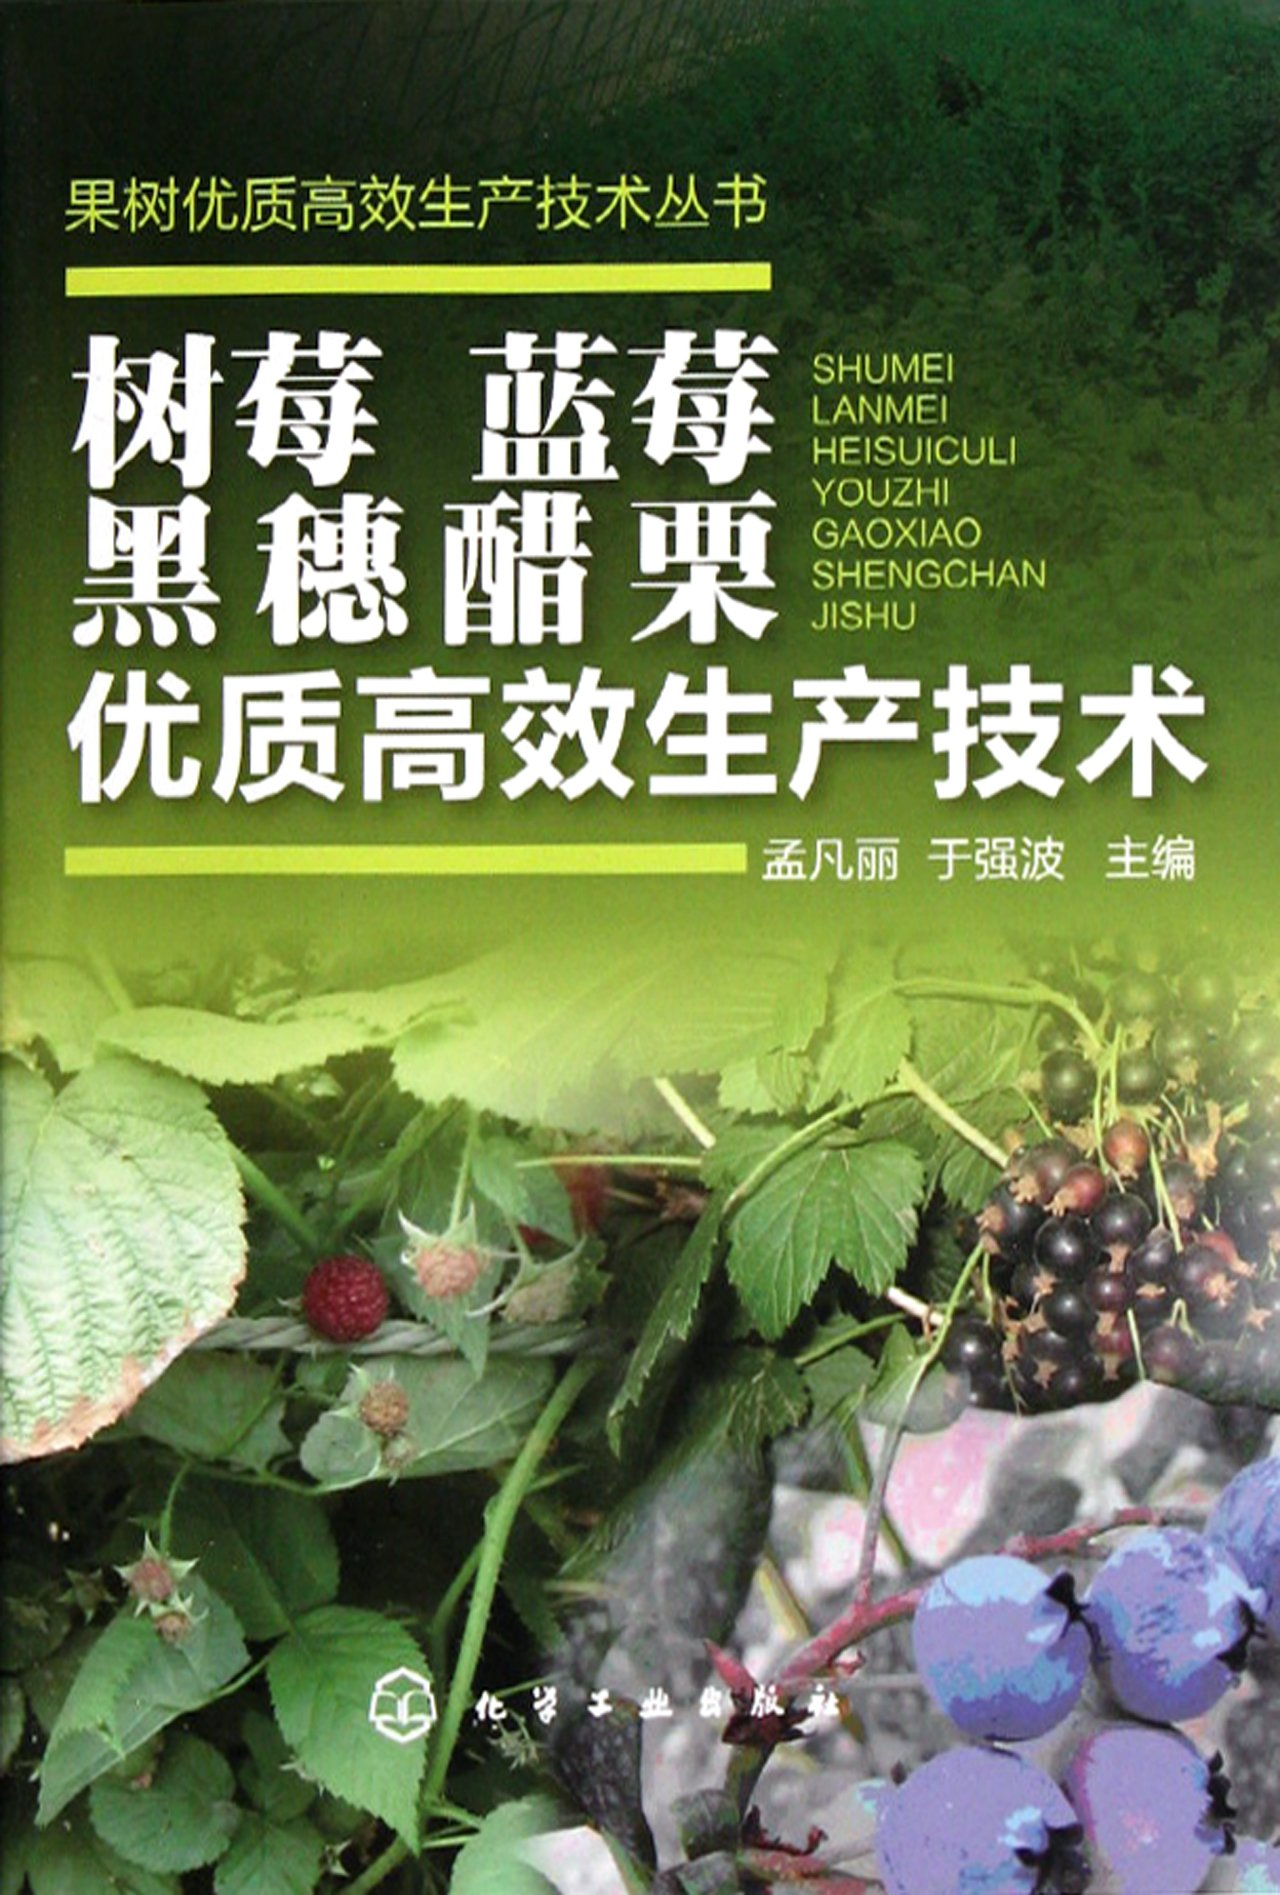 Download High-quality and Efficient Production Techniques of Raspberry, Blueberry, and Black Currant (Series of high-quality and efficient production techniques of fruit trees) (Chinese Edition) ebook